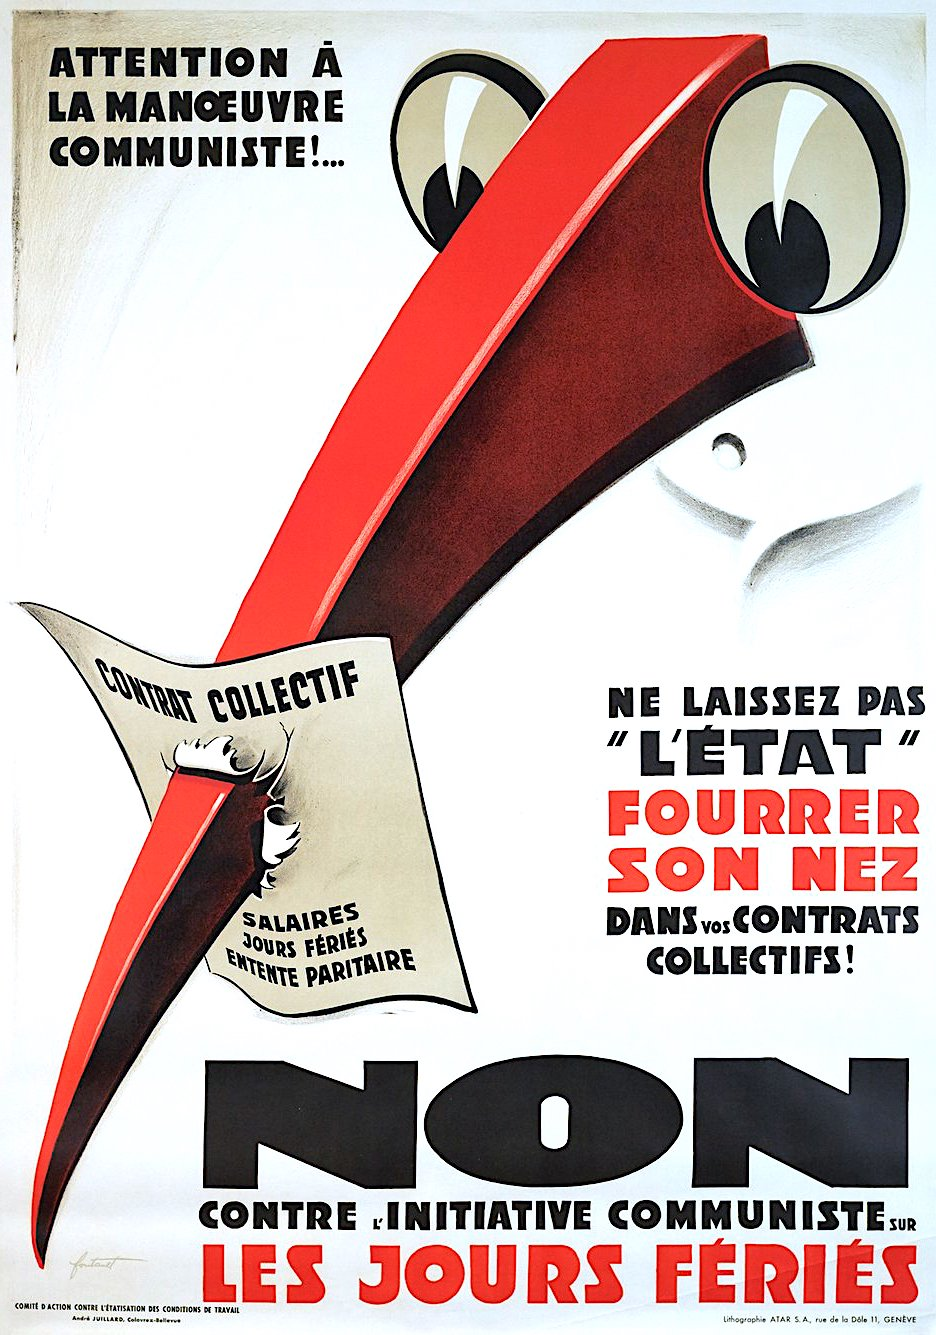 political poster by Noel Fontanet